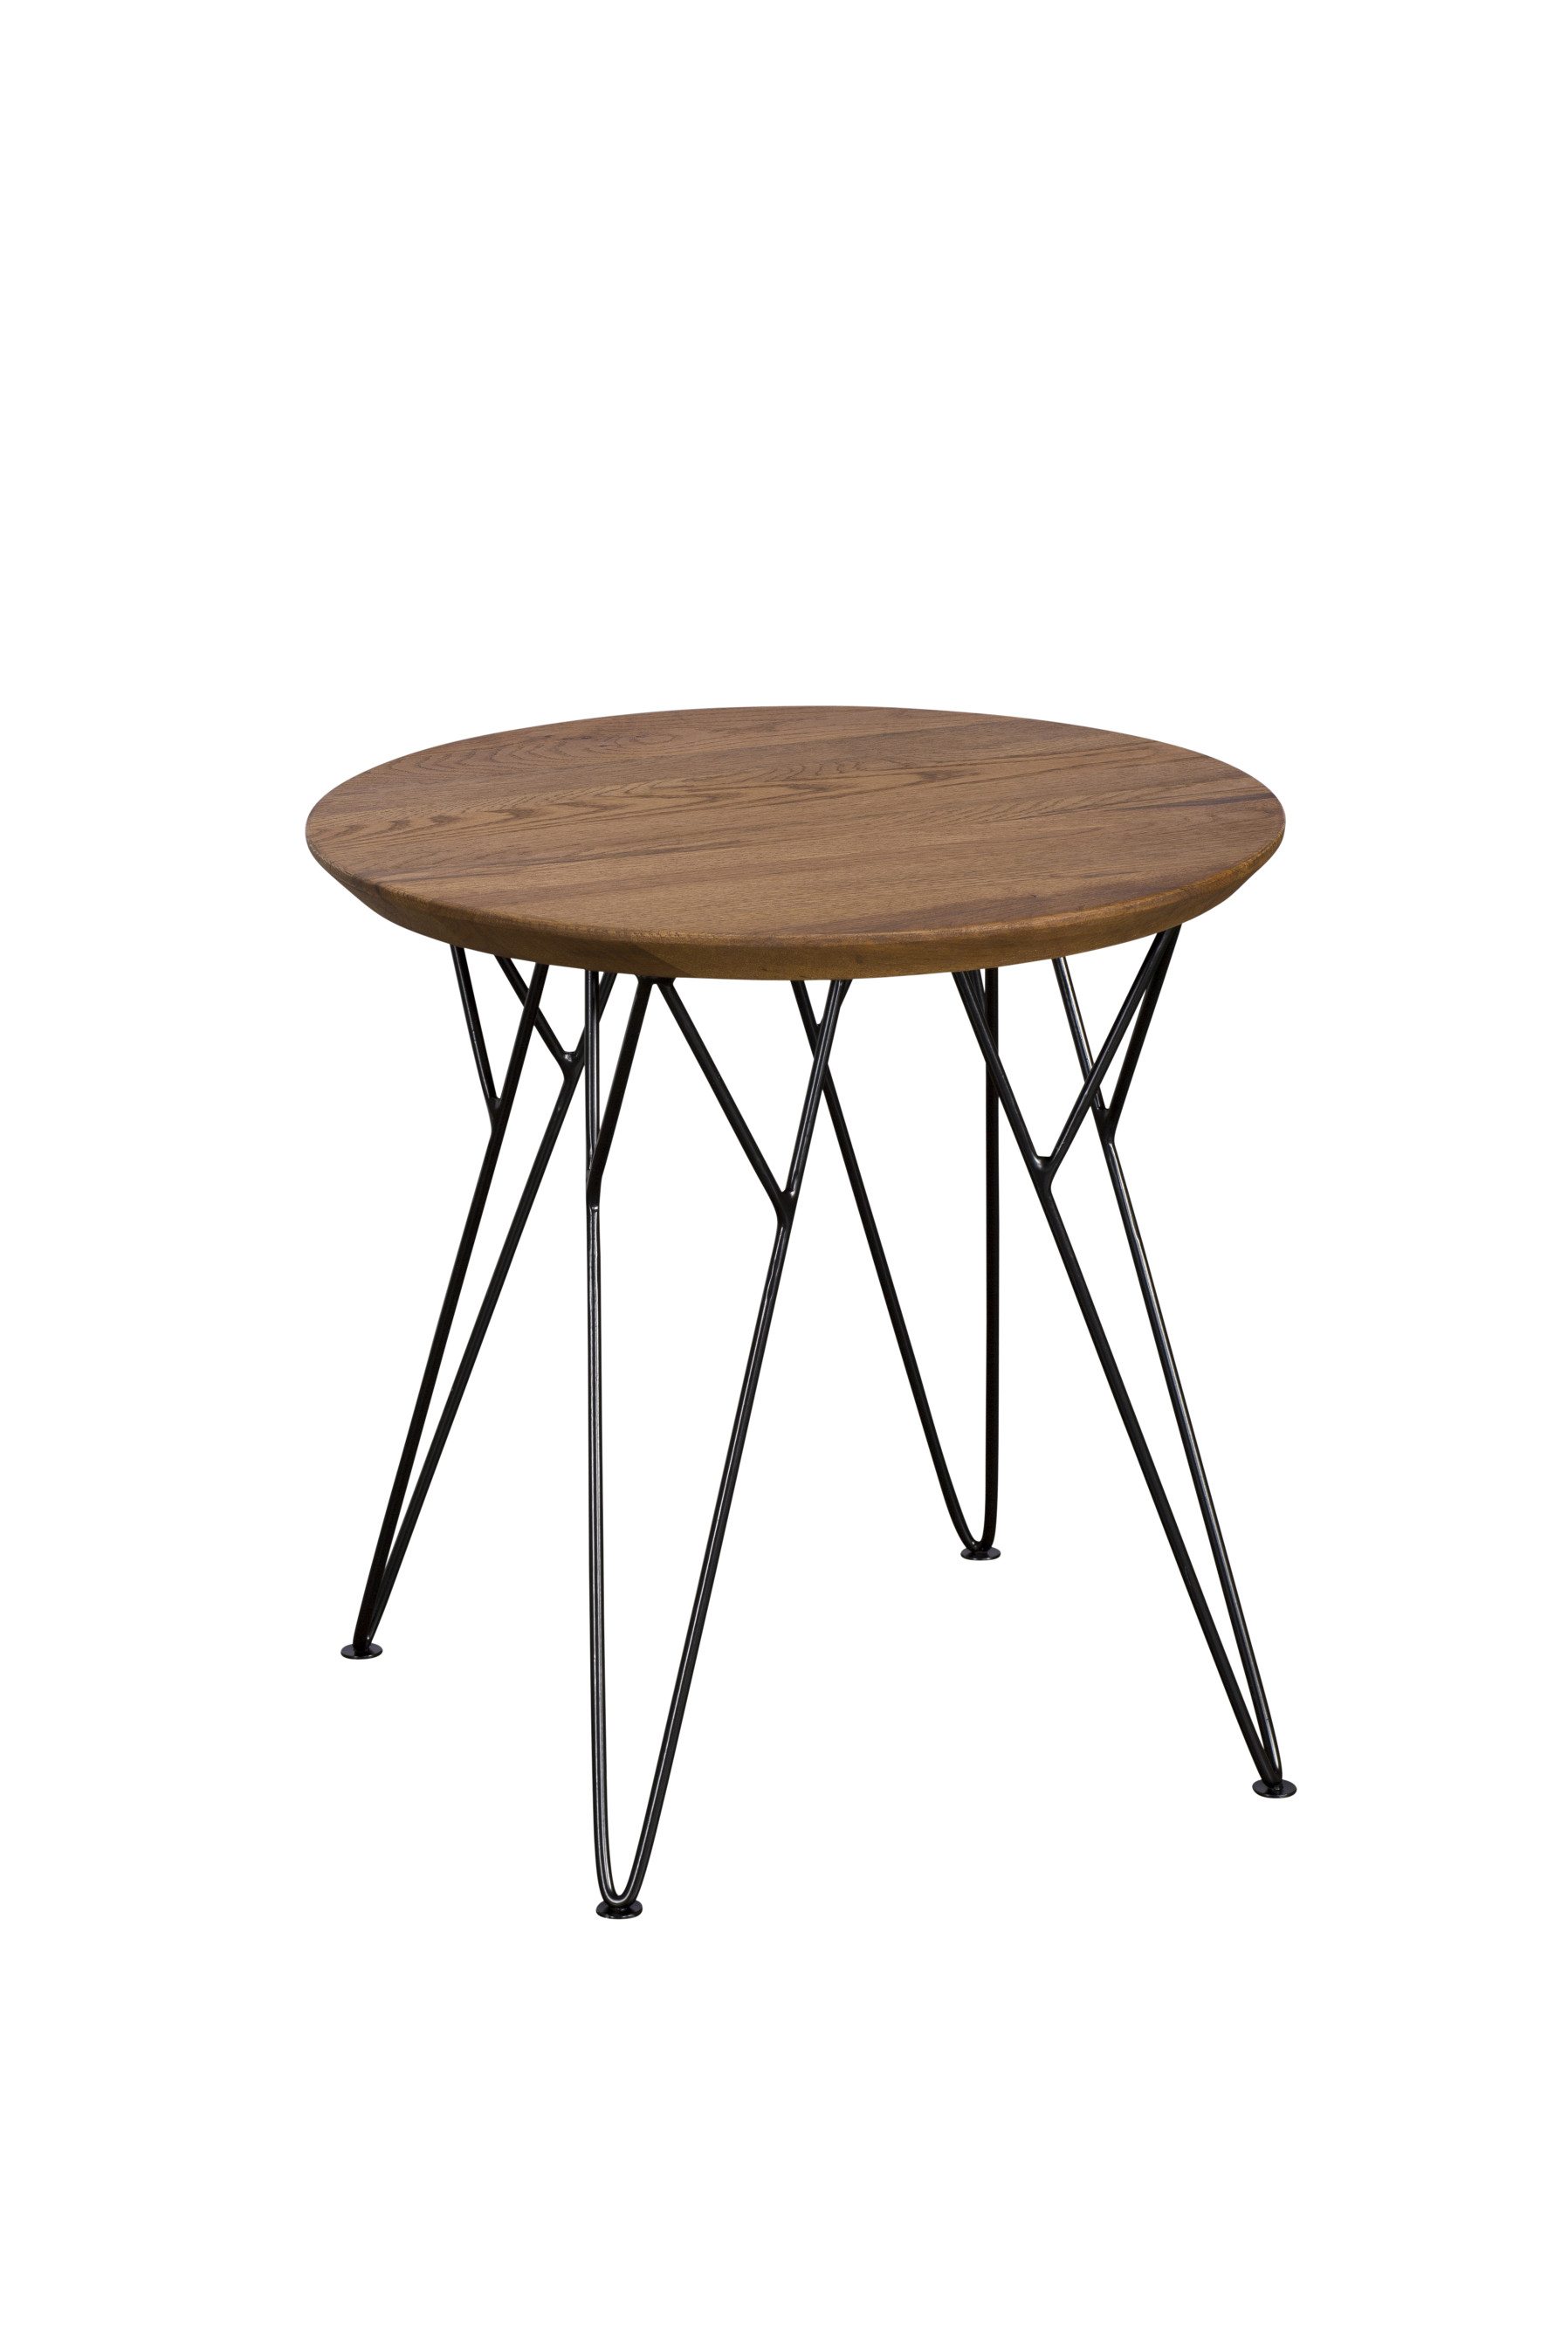 Heathfeild Slight Round Lamp Table